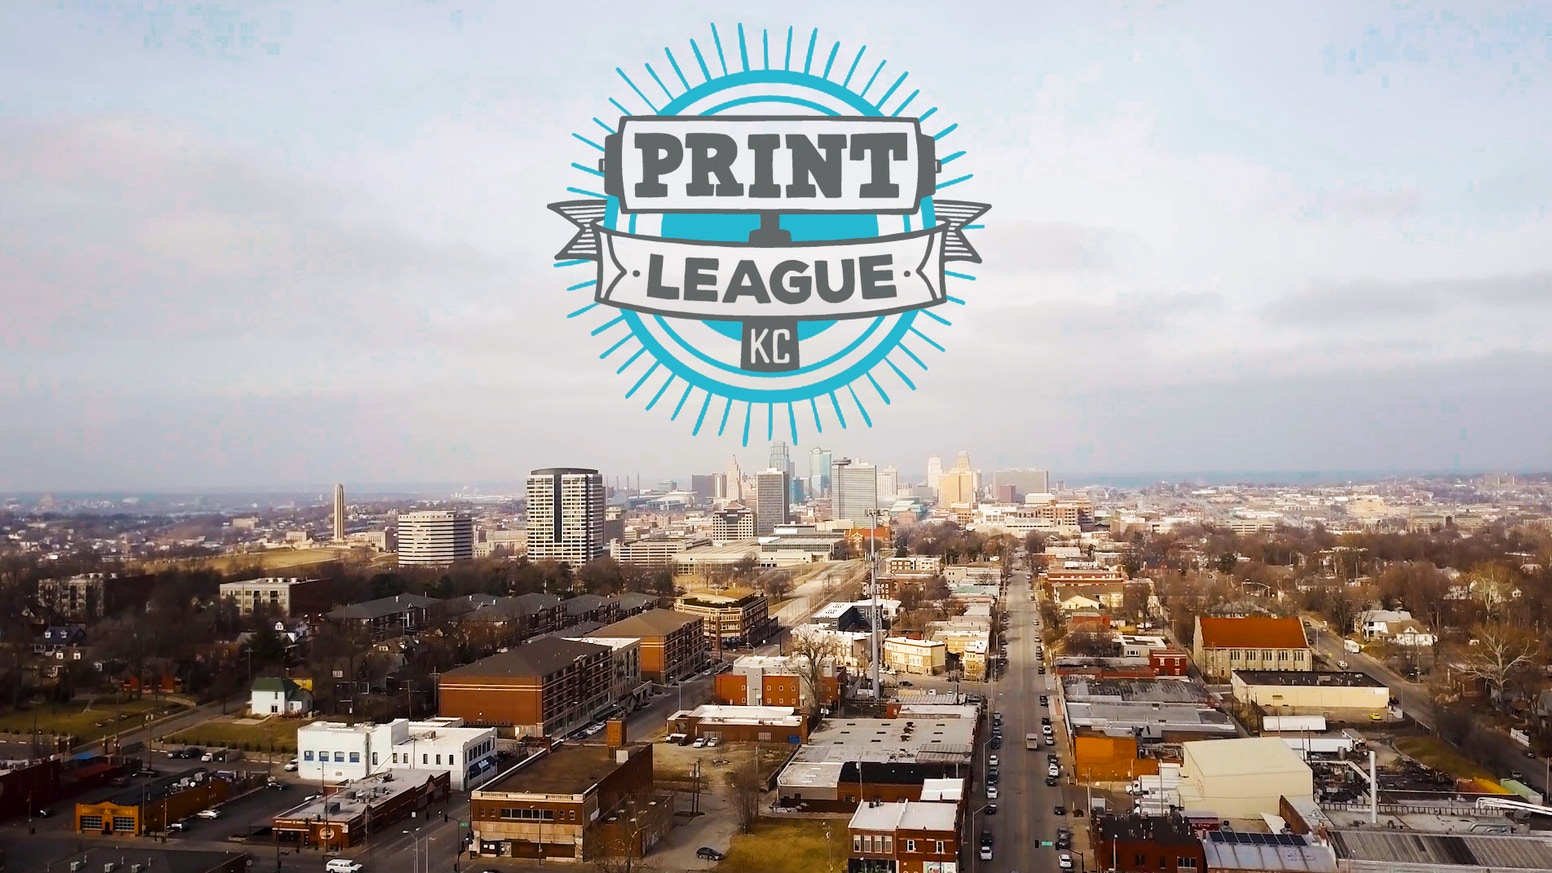 a future Kansas City community printshop looking to inspire the artist in all of us.